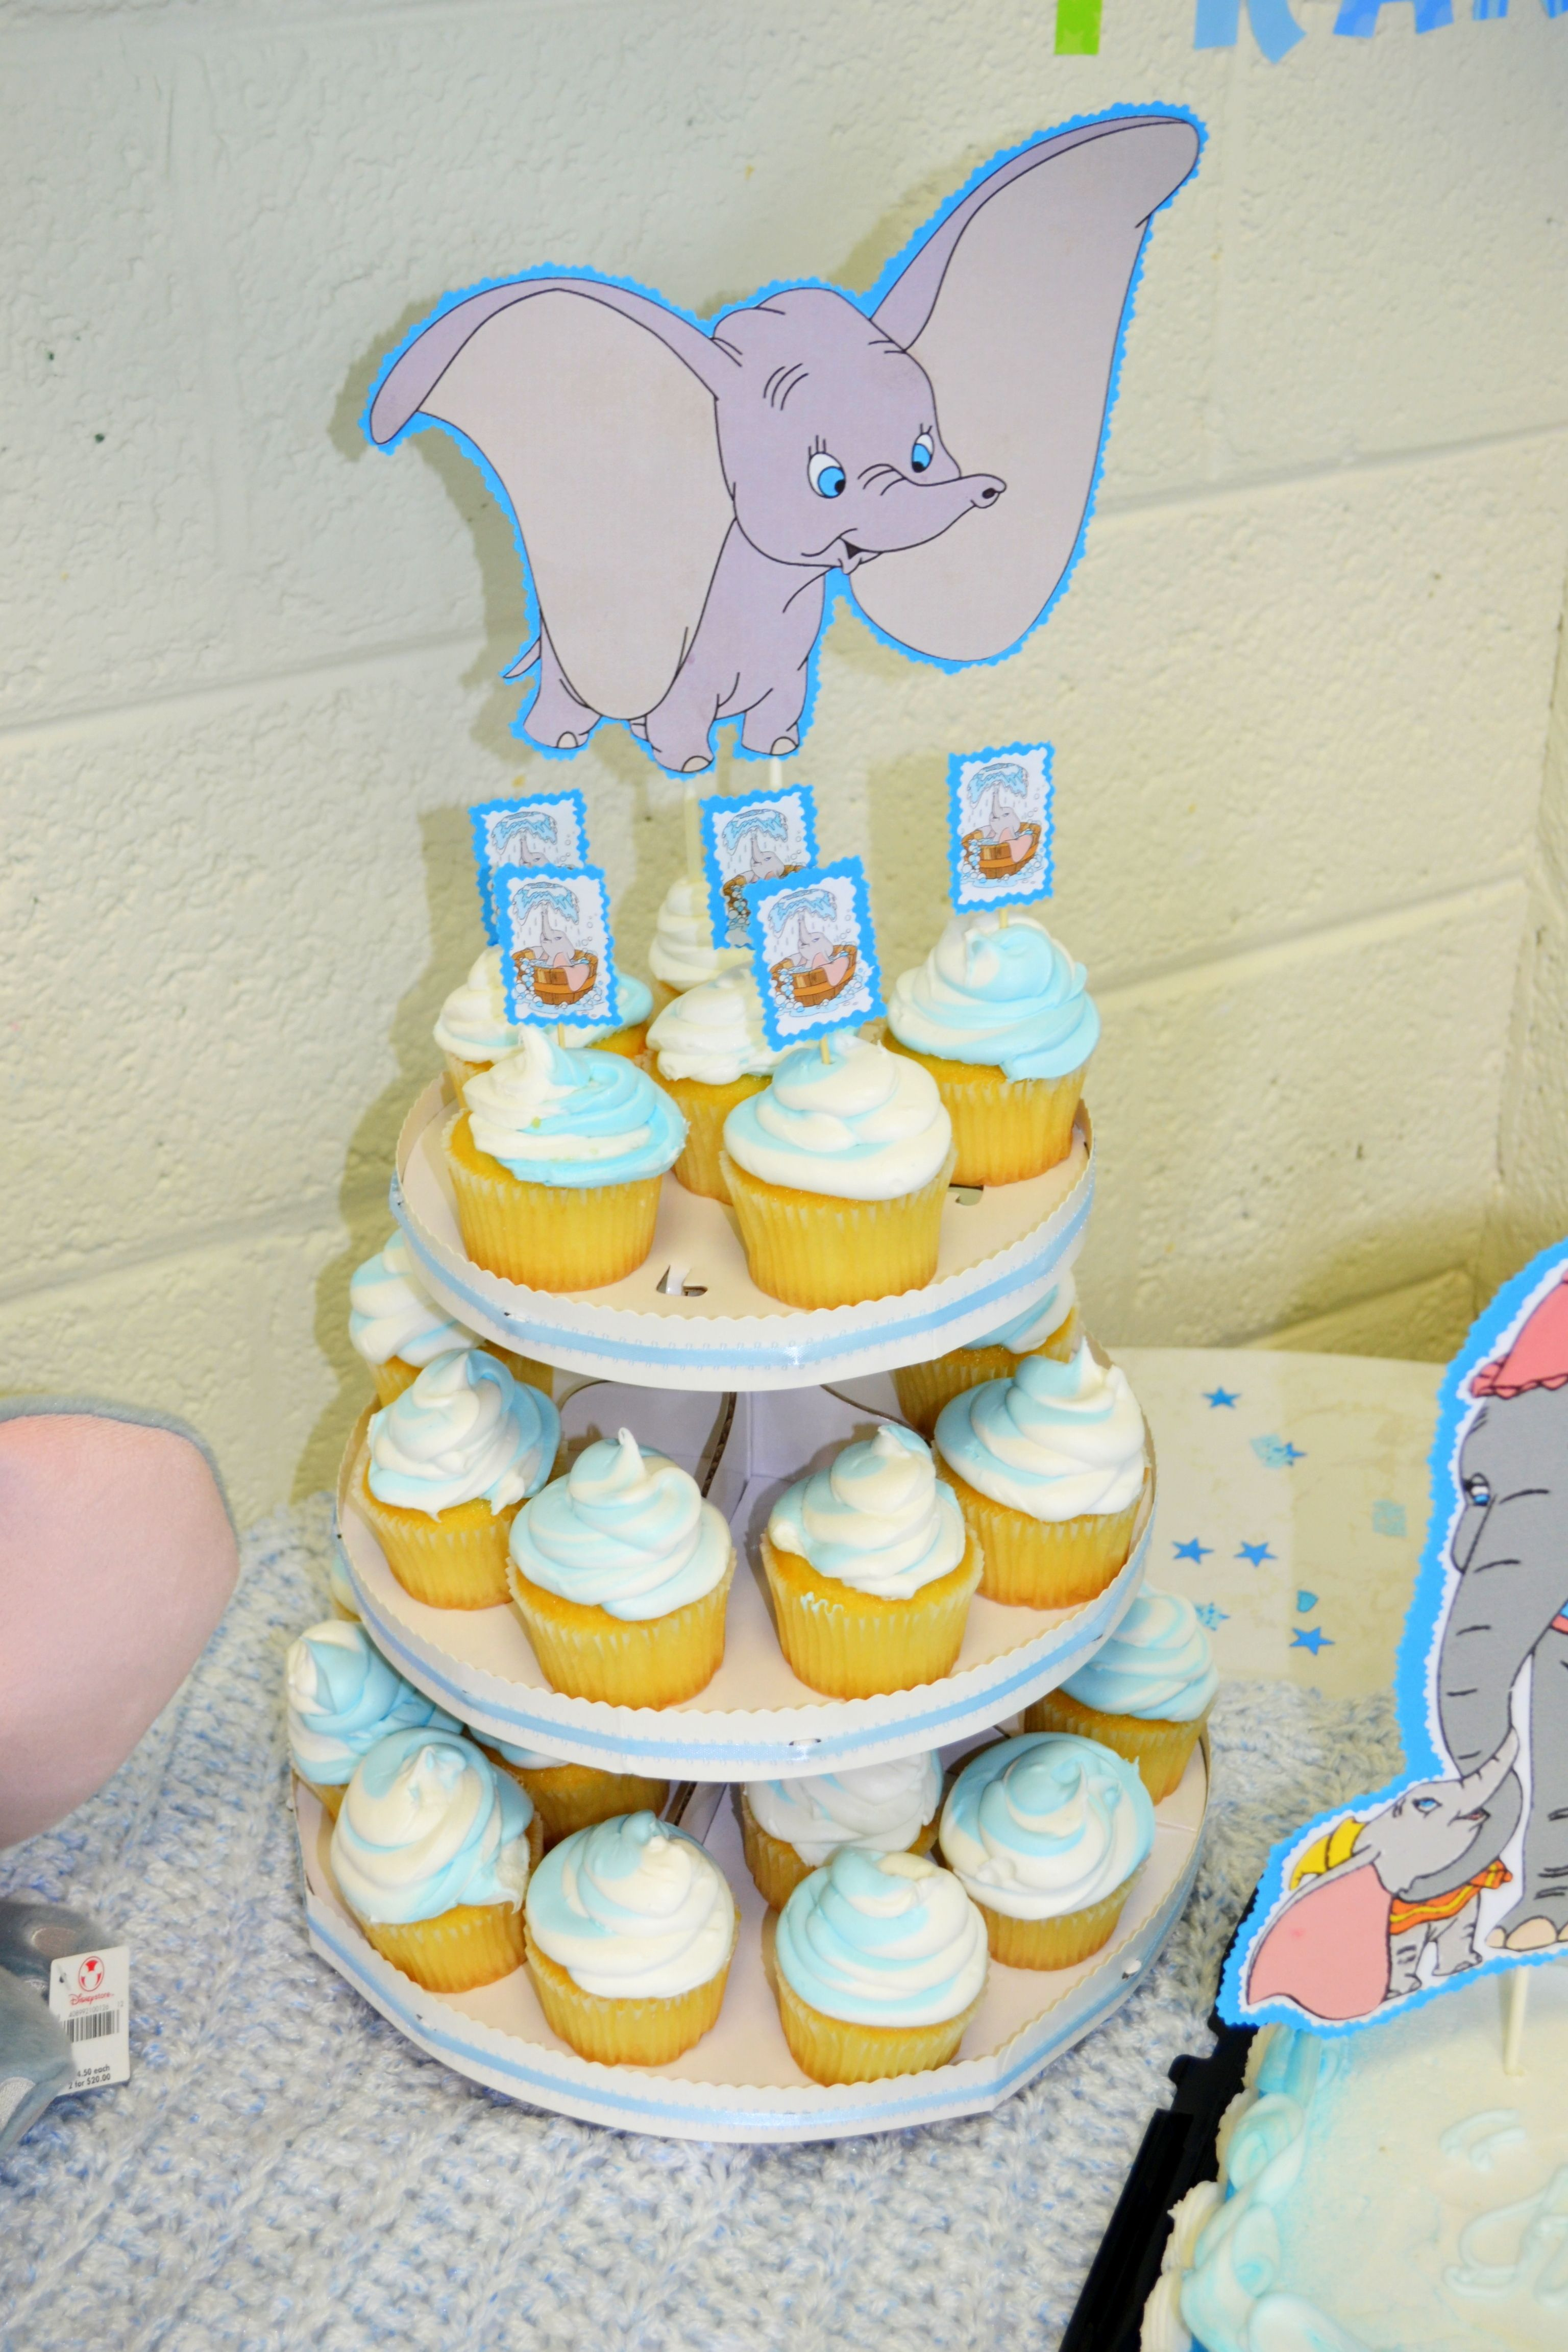 Diy Dumbo Baby Shower Could Put A Little Peanut On Top Of Each Cupcake Maybe A Circus Peanut Dumbo Baby Shower Dumbo Baby Shower Theme Baby Shower Food